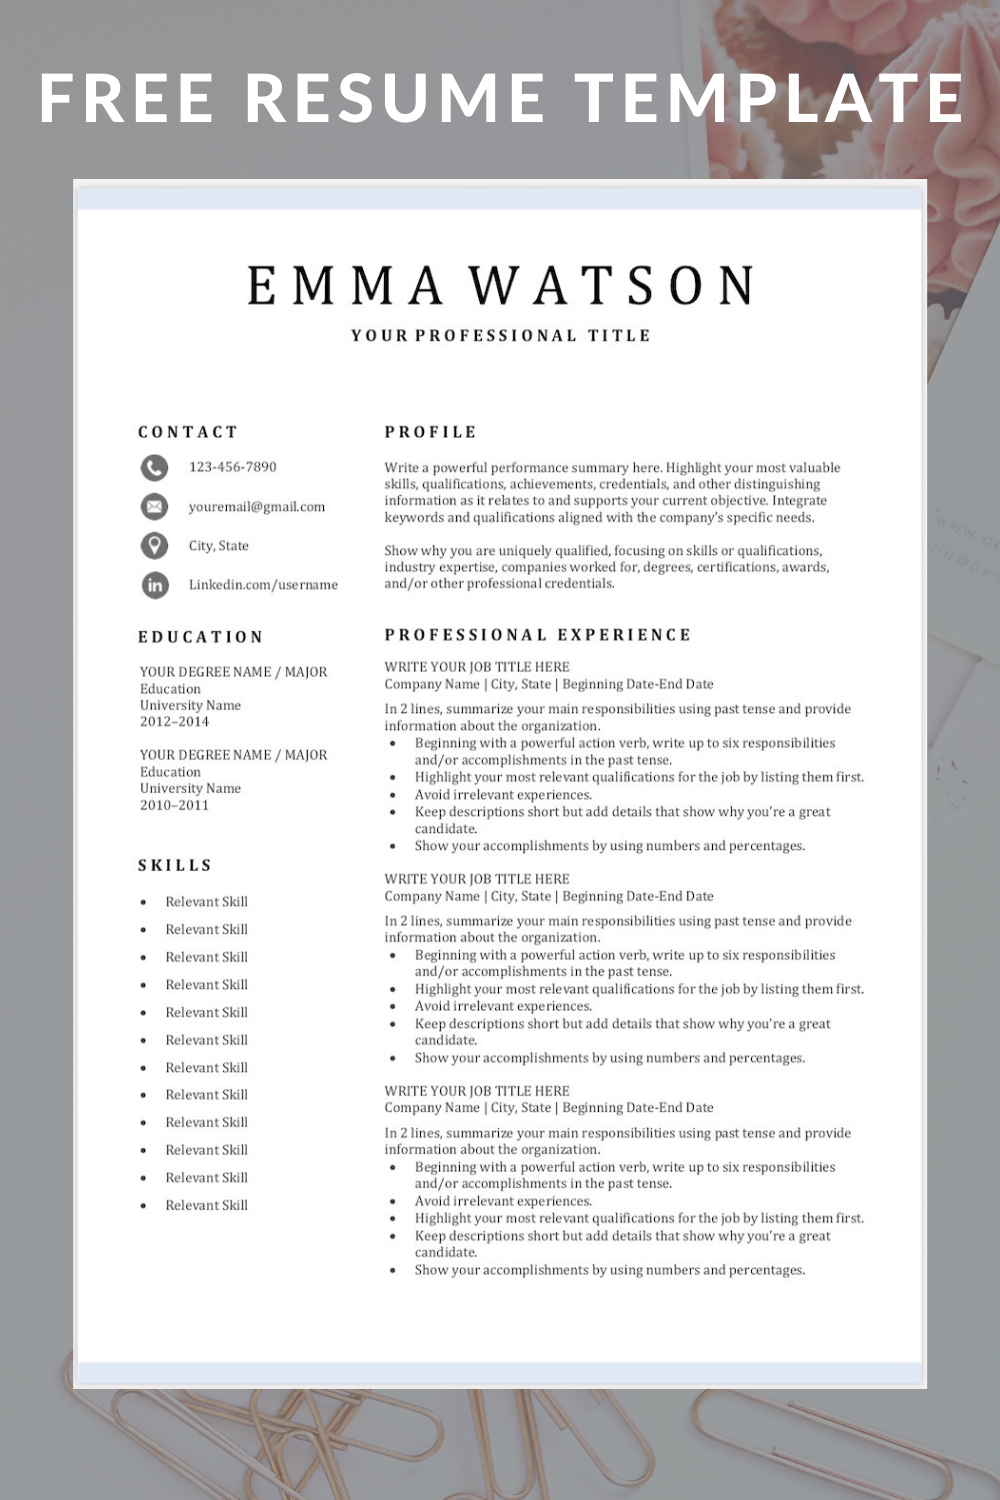 Free Resume Template In 2020 Resume Template Free Nursing Resume Template Downloadable Resume Template